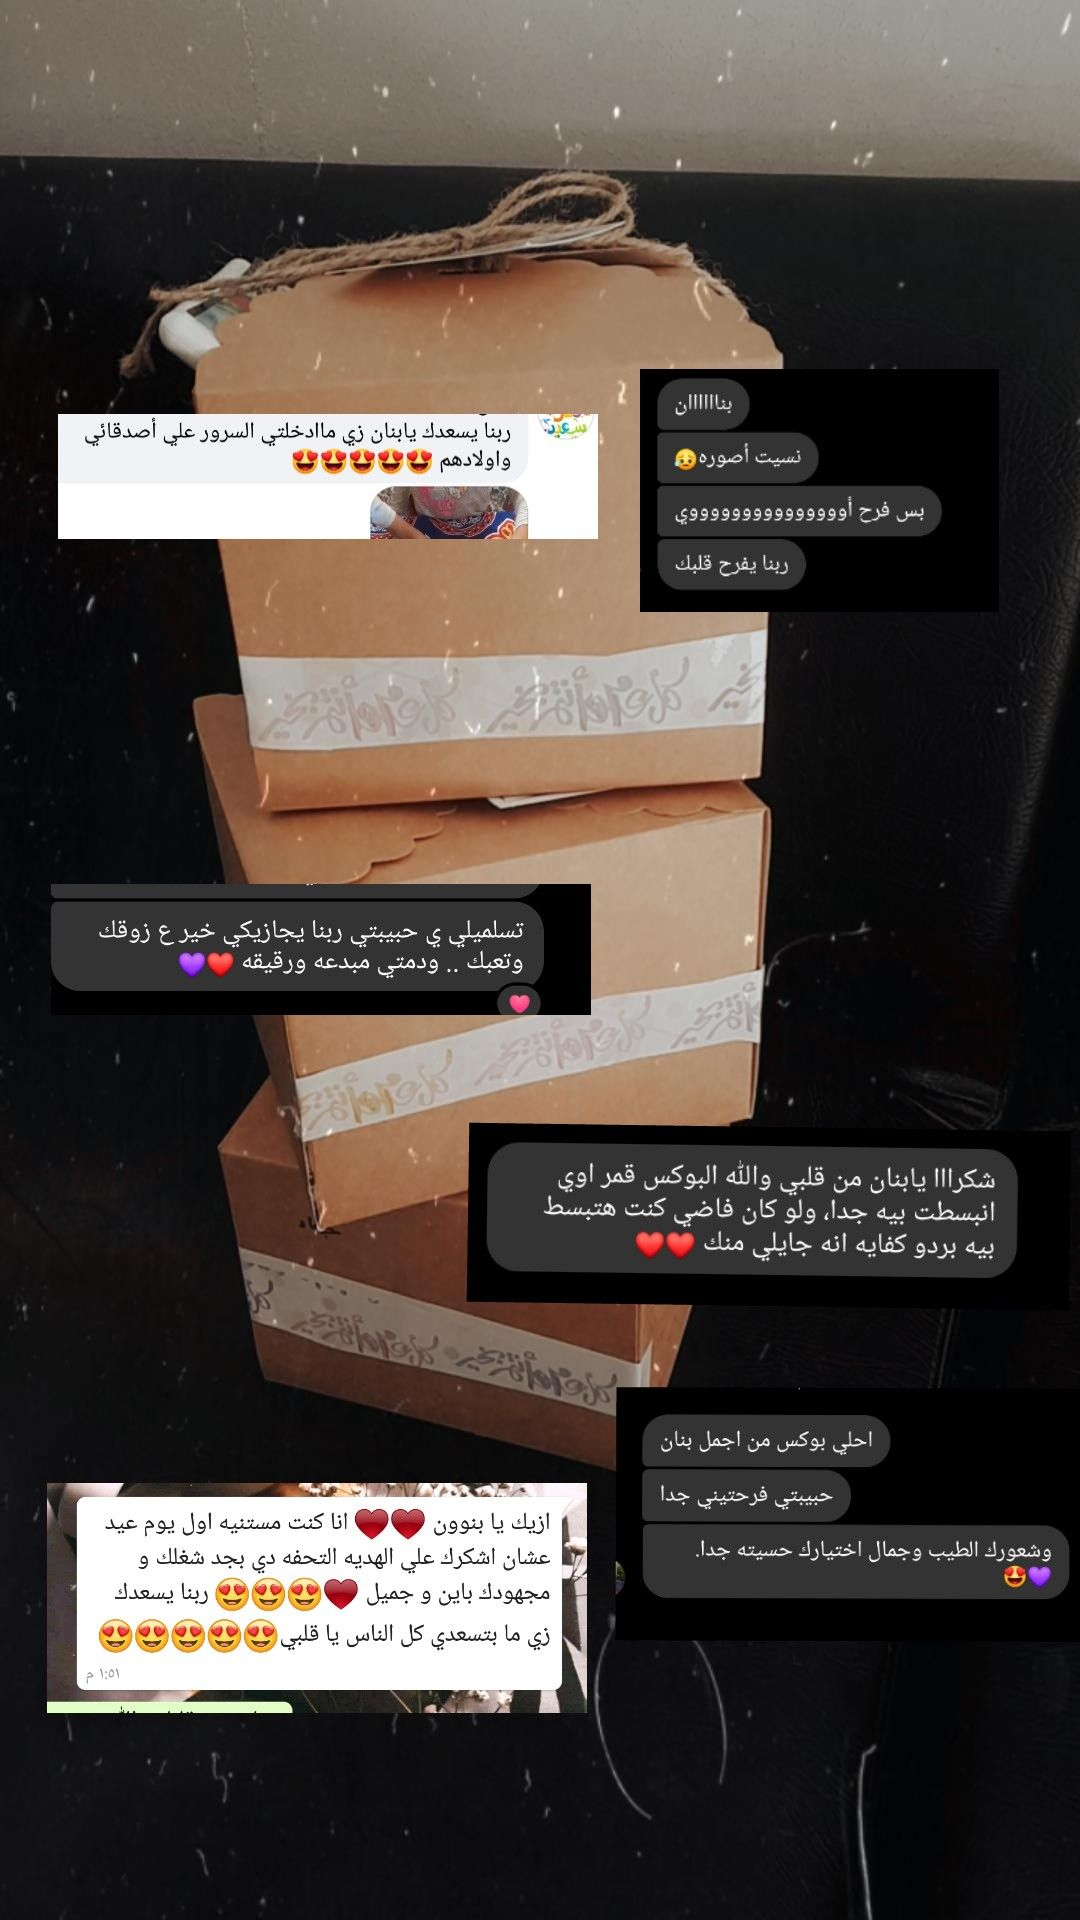 Pin By بنان الطنطاوي On بوكس العيد Cards Against Humanity Cards Human